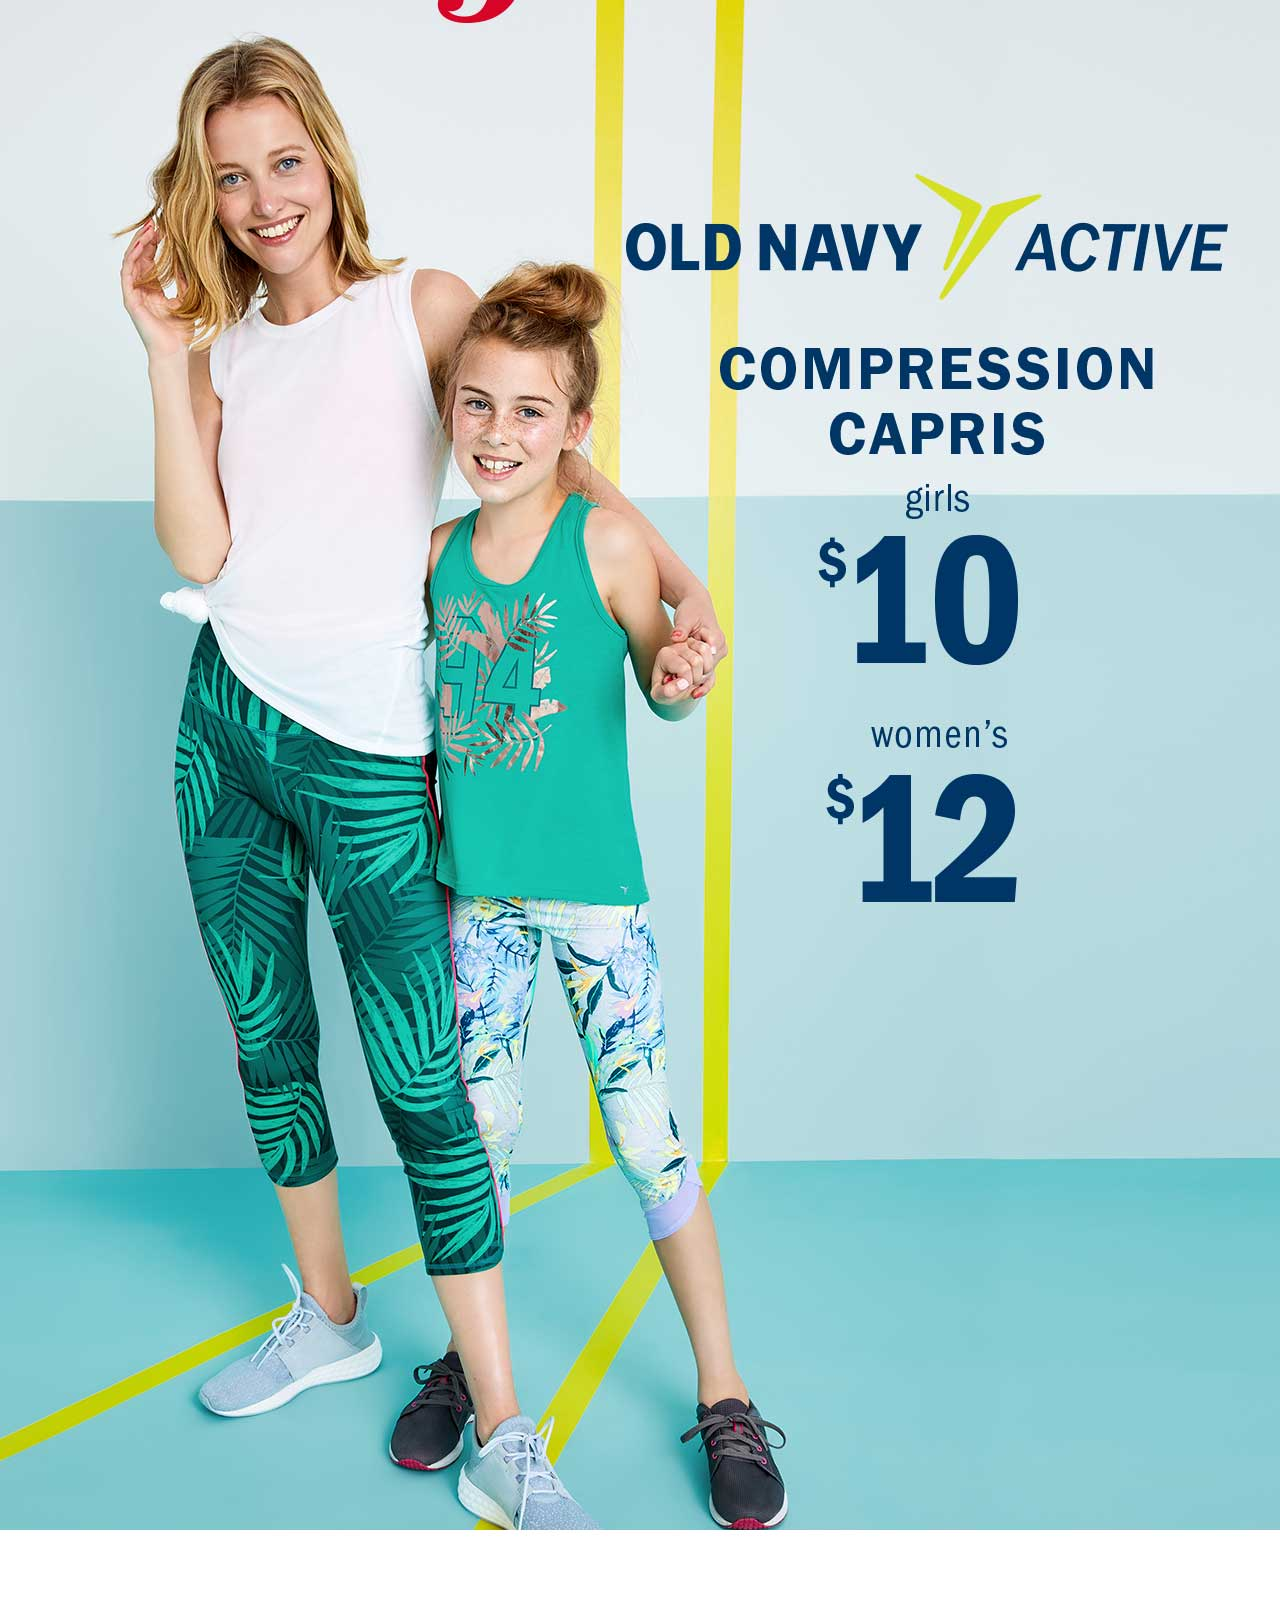 OLD NAVY ACTIVE | COMPRESSION CAPRIS girls $10 | women's $12